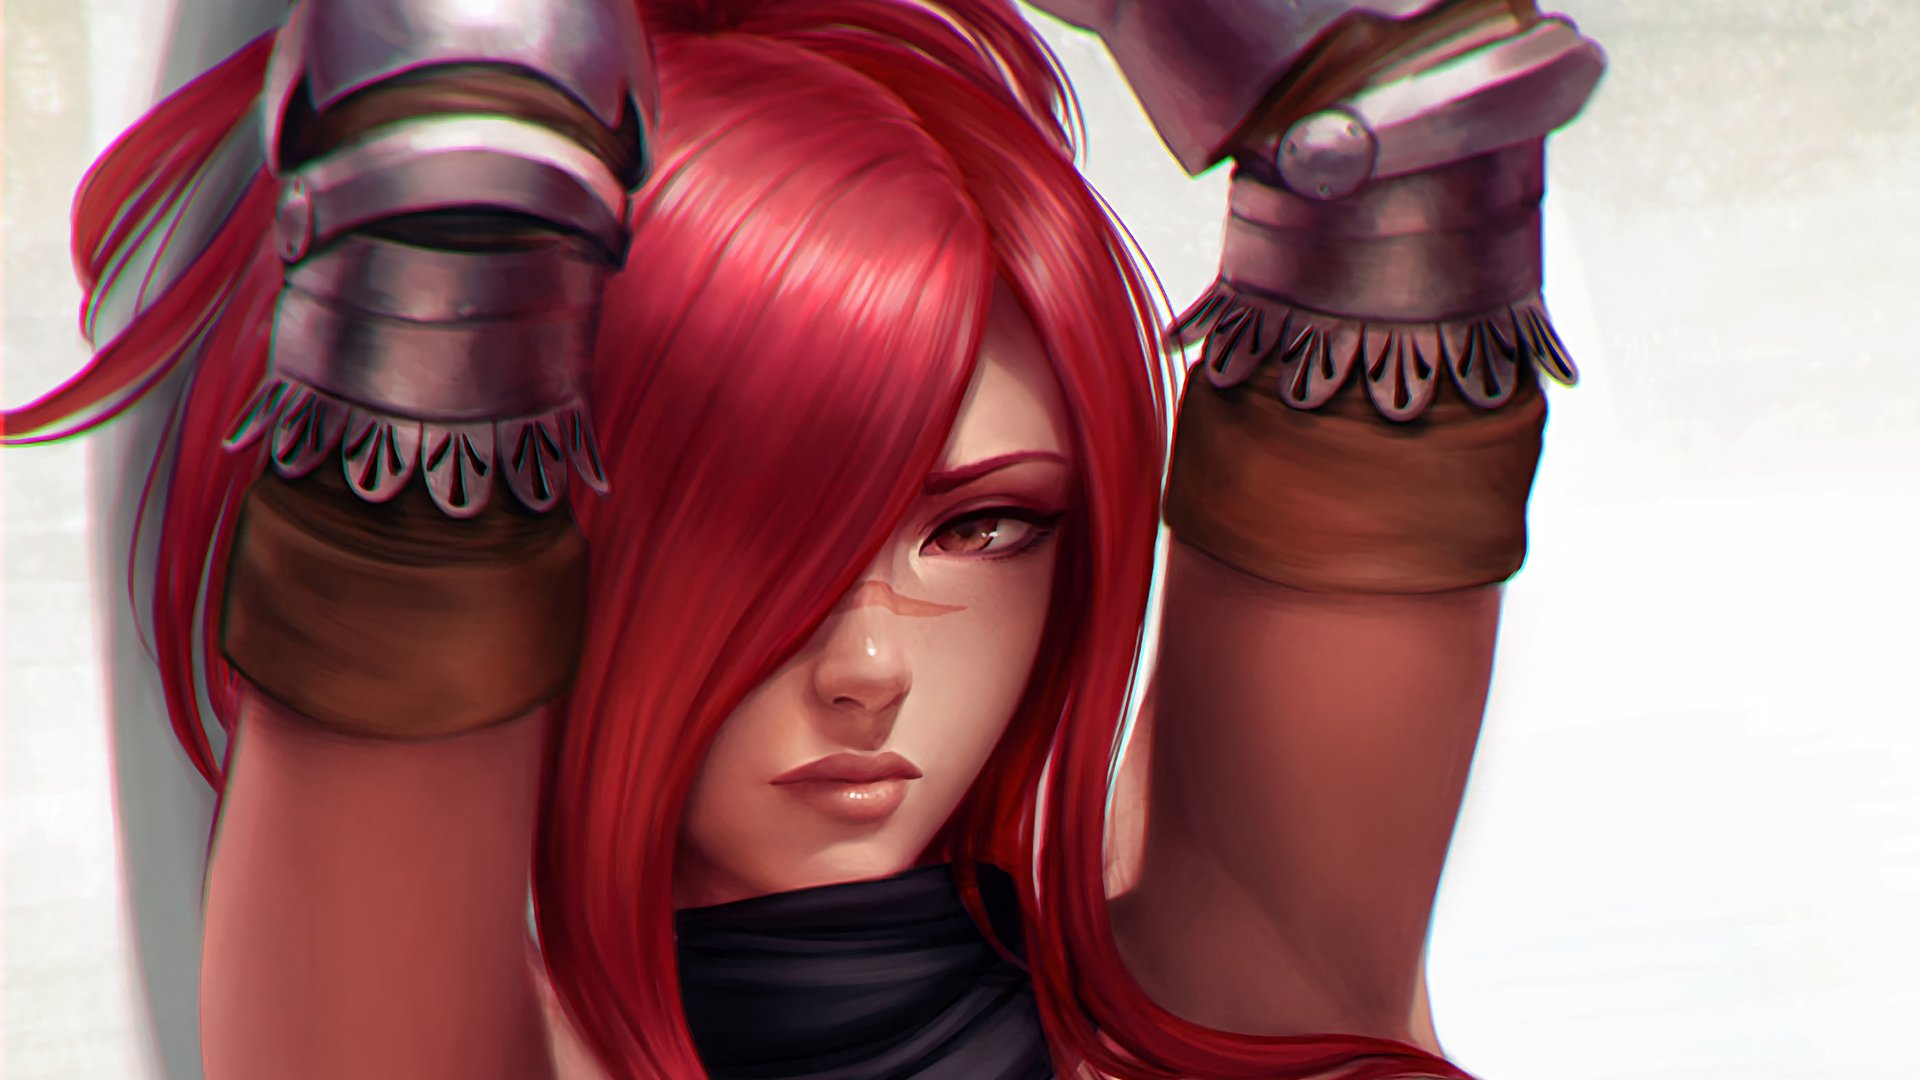 Anime - Fairy Tail  Fantasy Woman Girl Face Red Hair Erza Scarlet Wallpaper